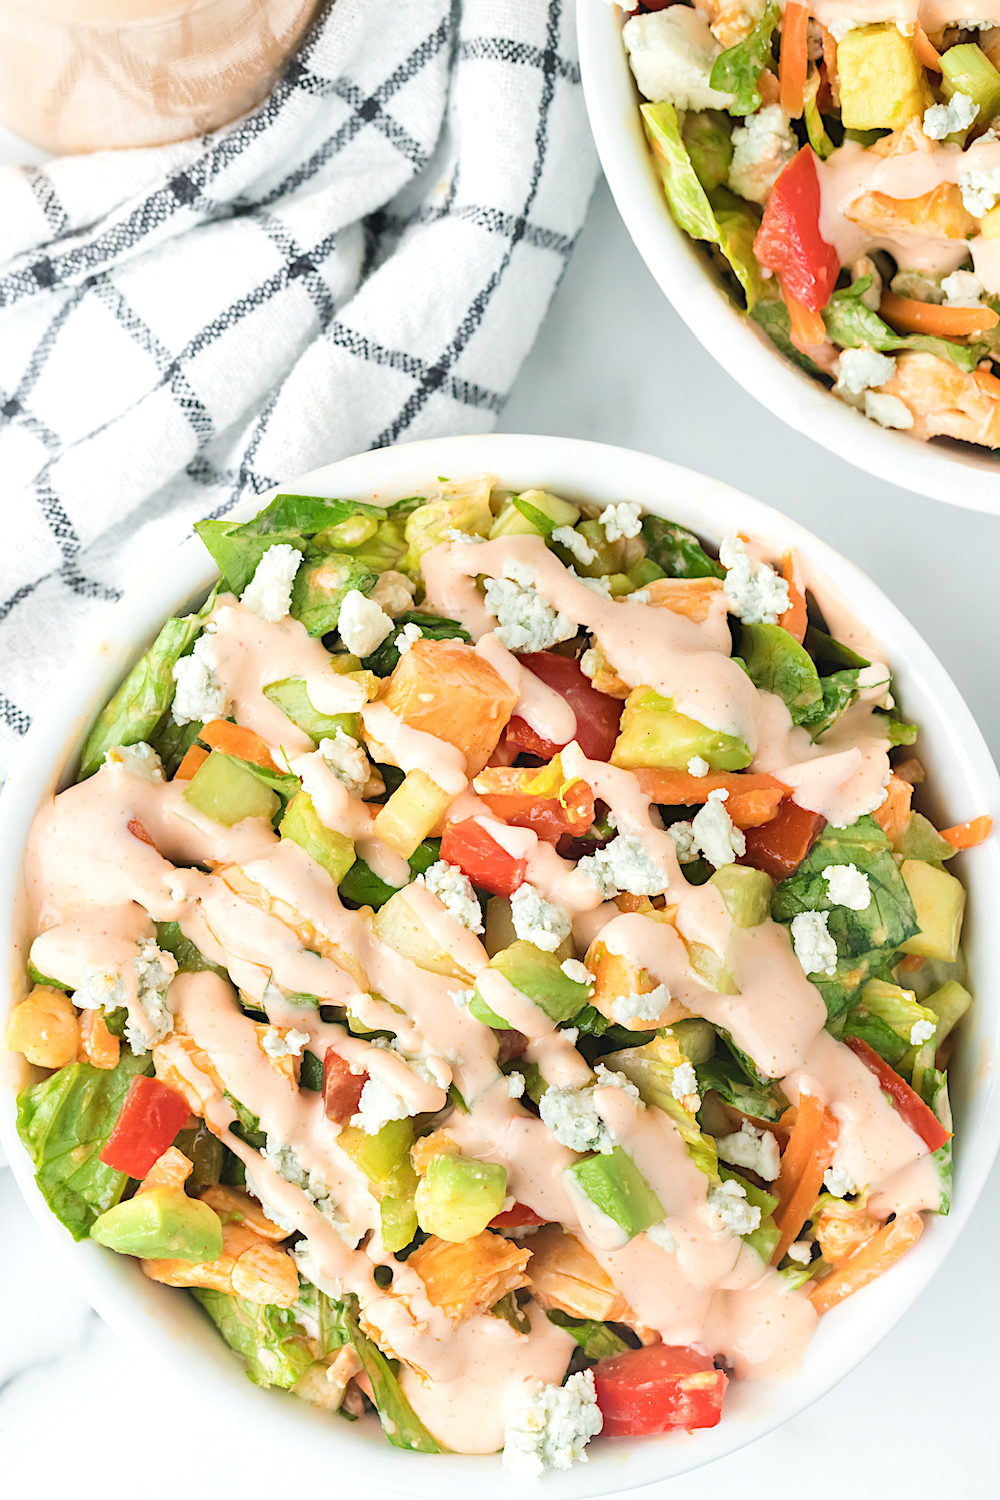 Buffalo Chicken Chopped Salad served in white bowls with dressing in mason jar on side.